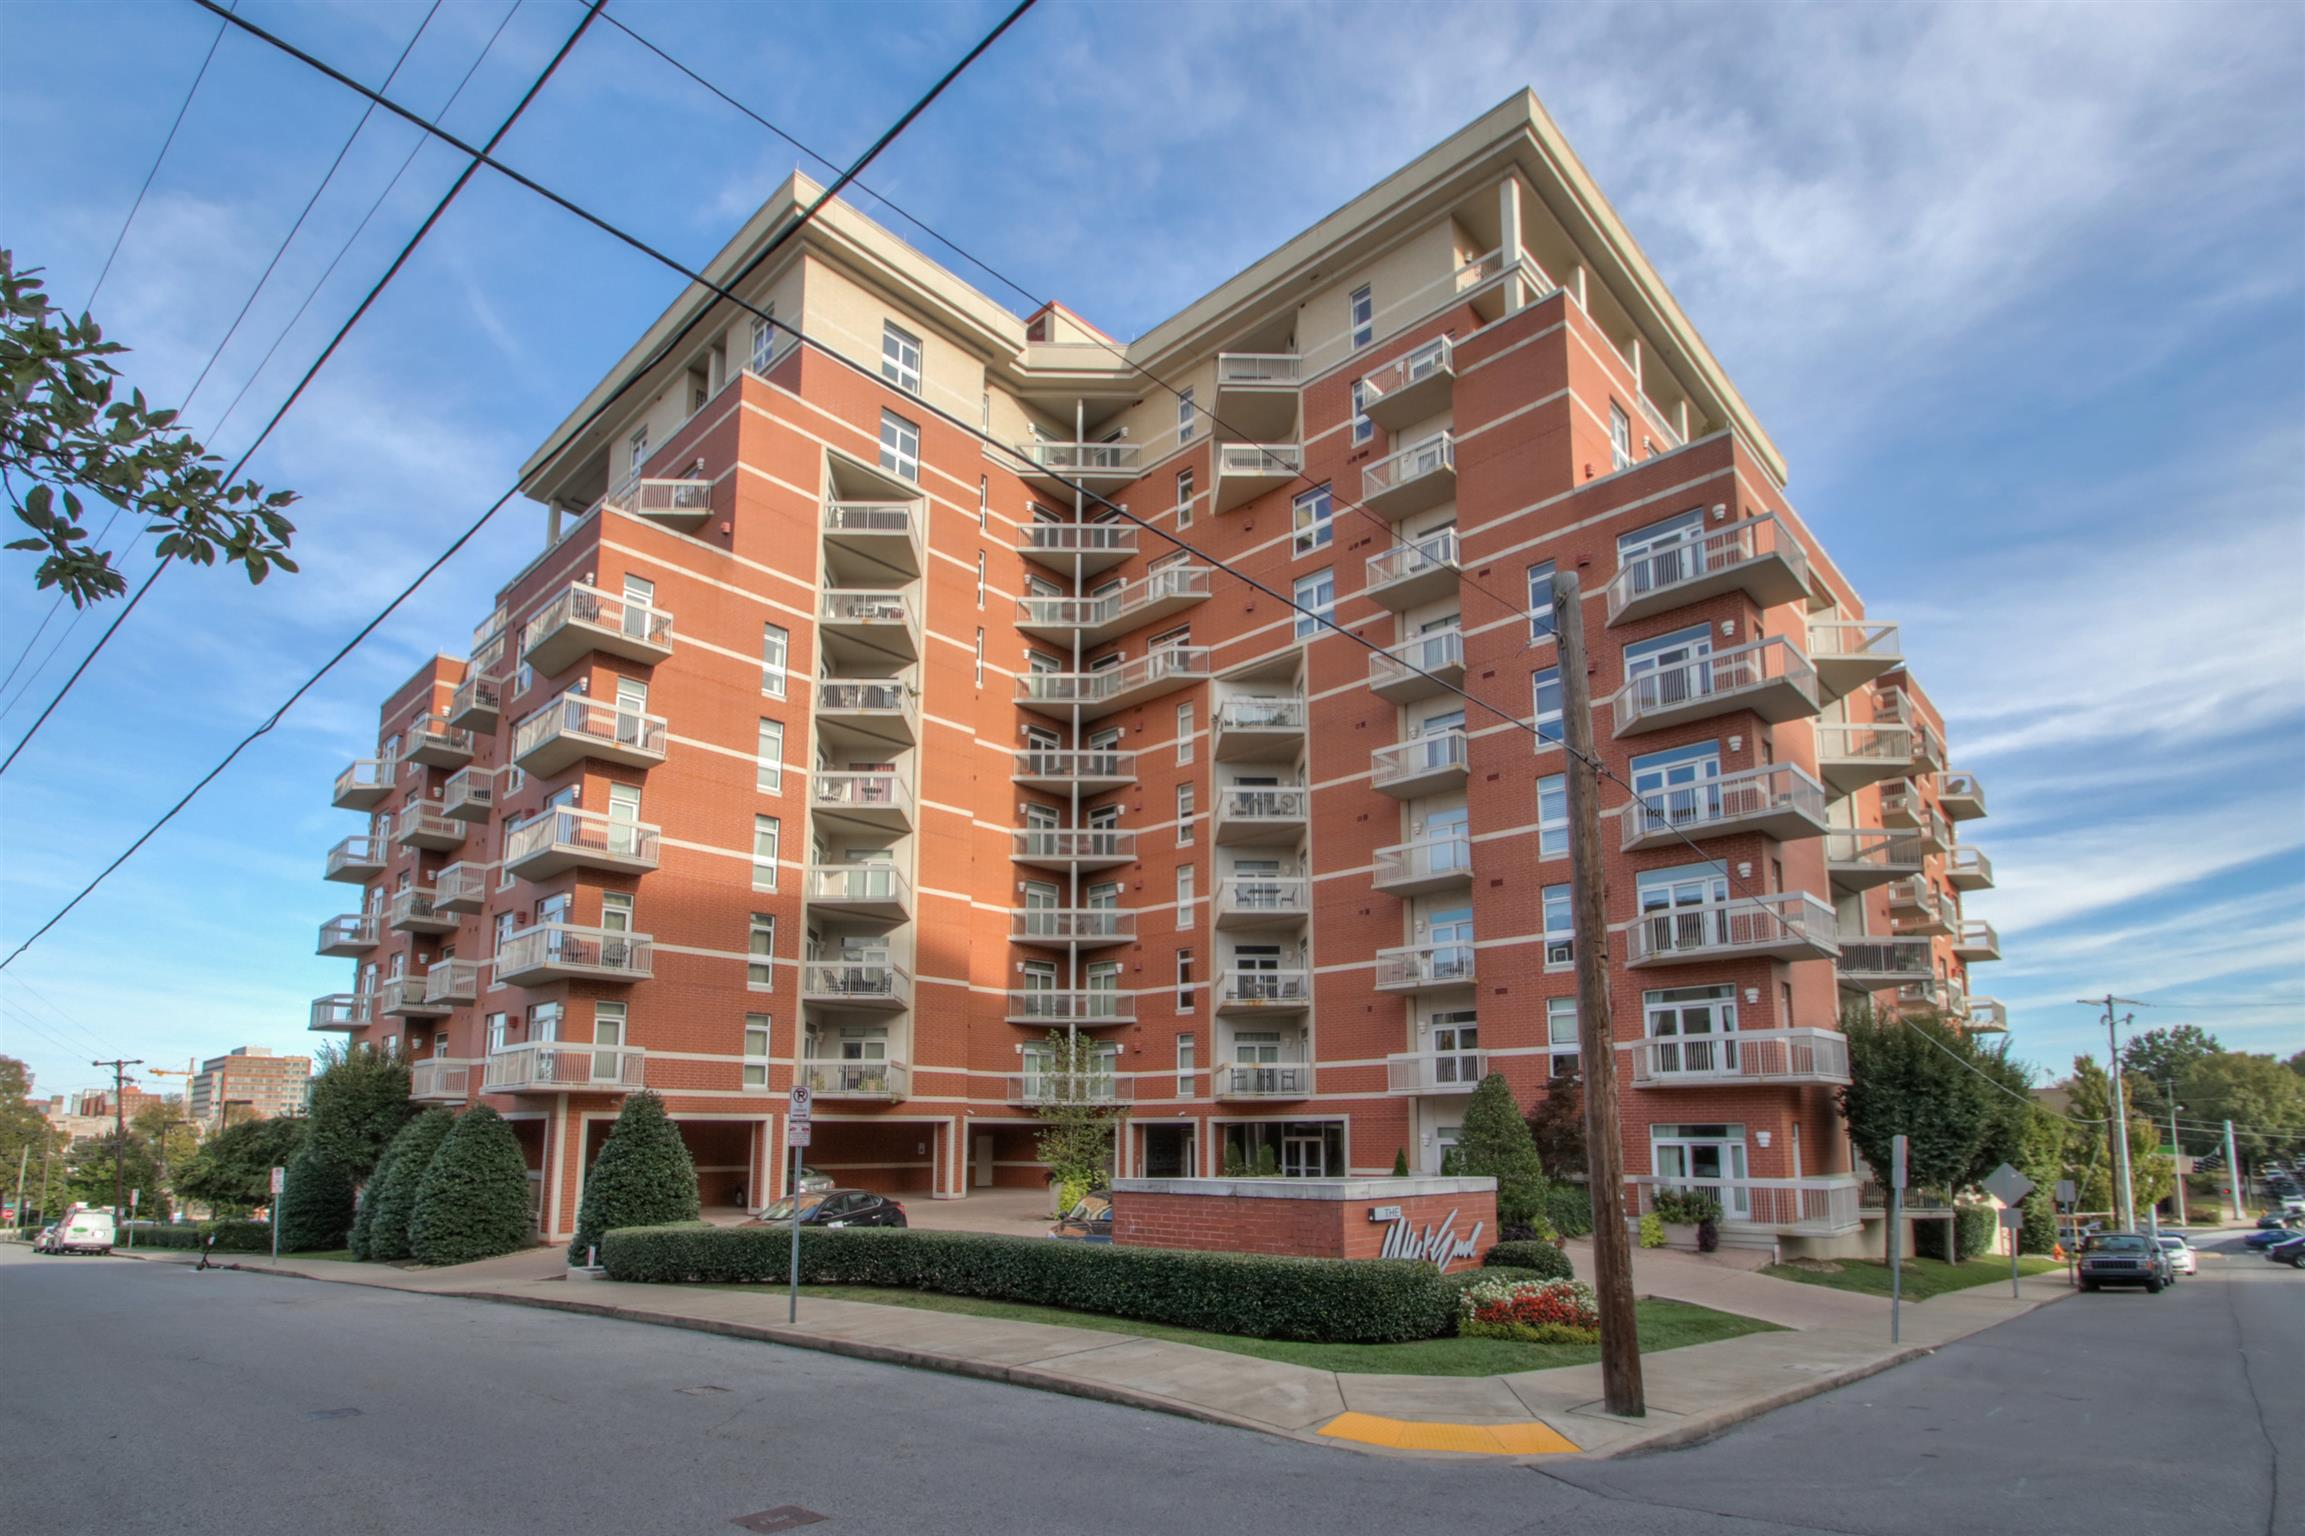 110 31St Ave N Apt 601, one of homes for sale in Nashville - Midtown